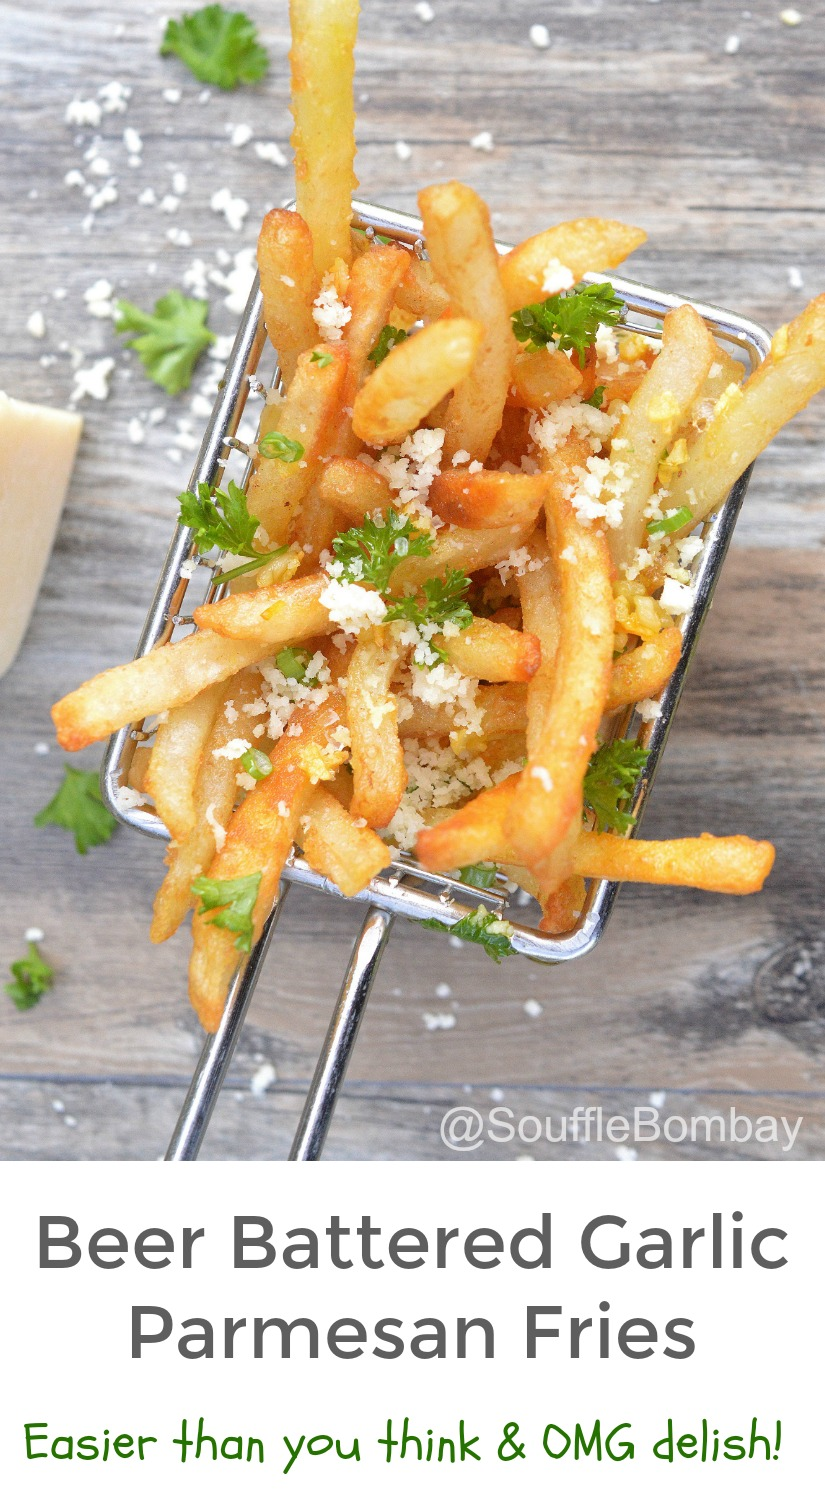 Beer Battered Garlic Parmesan Fries, made easy by starting with frozen fries, these babies are seriously delish!